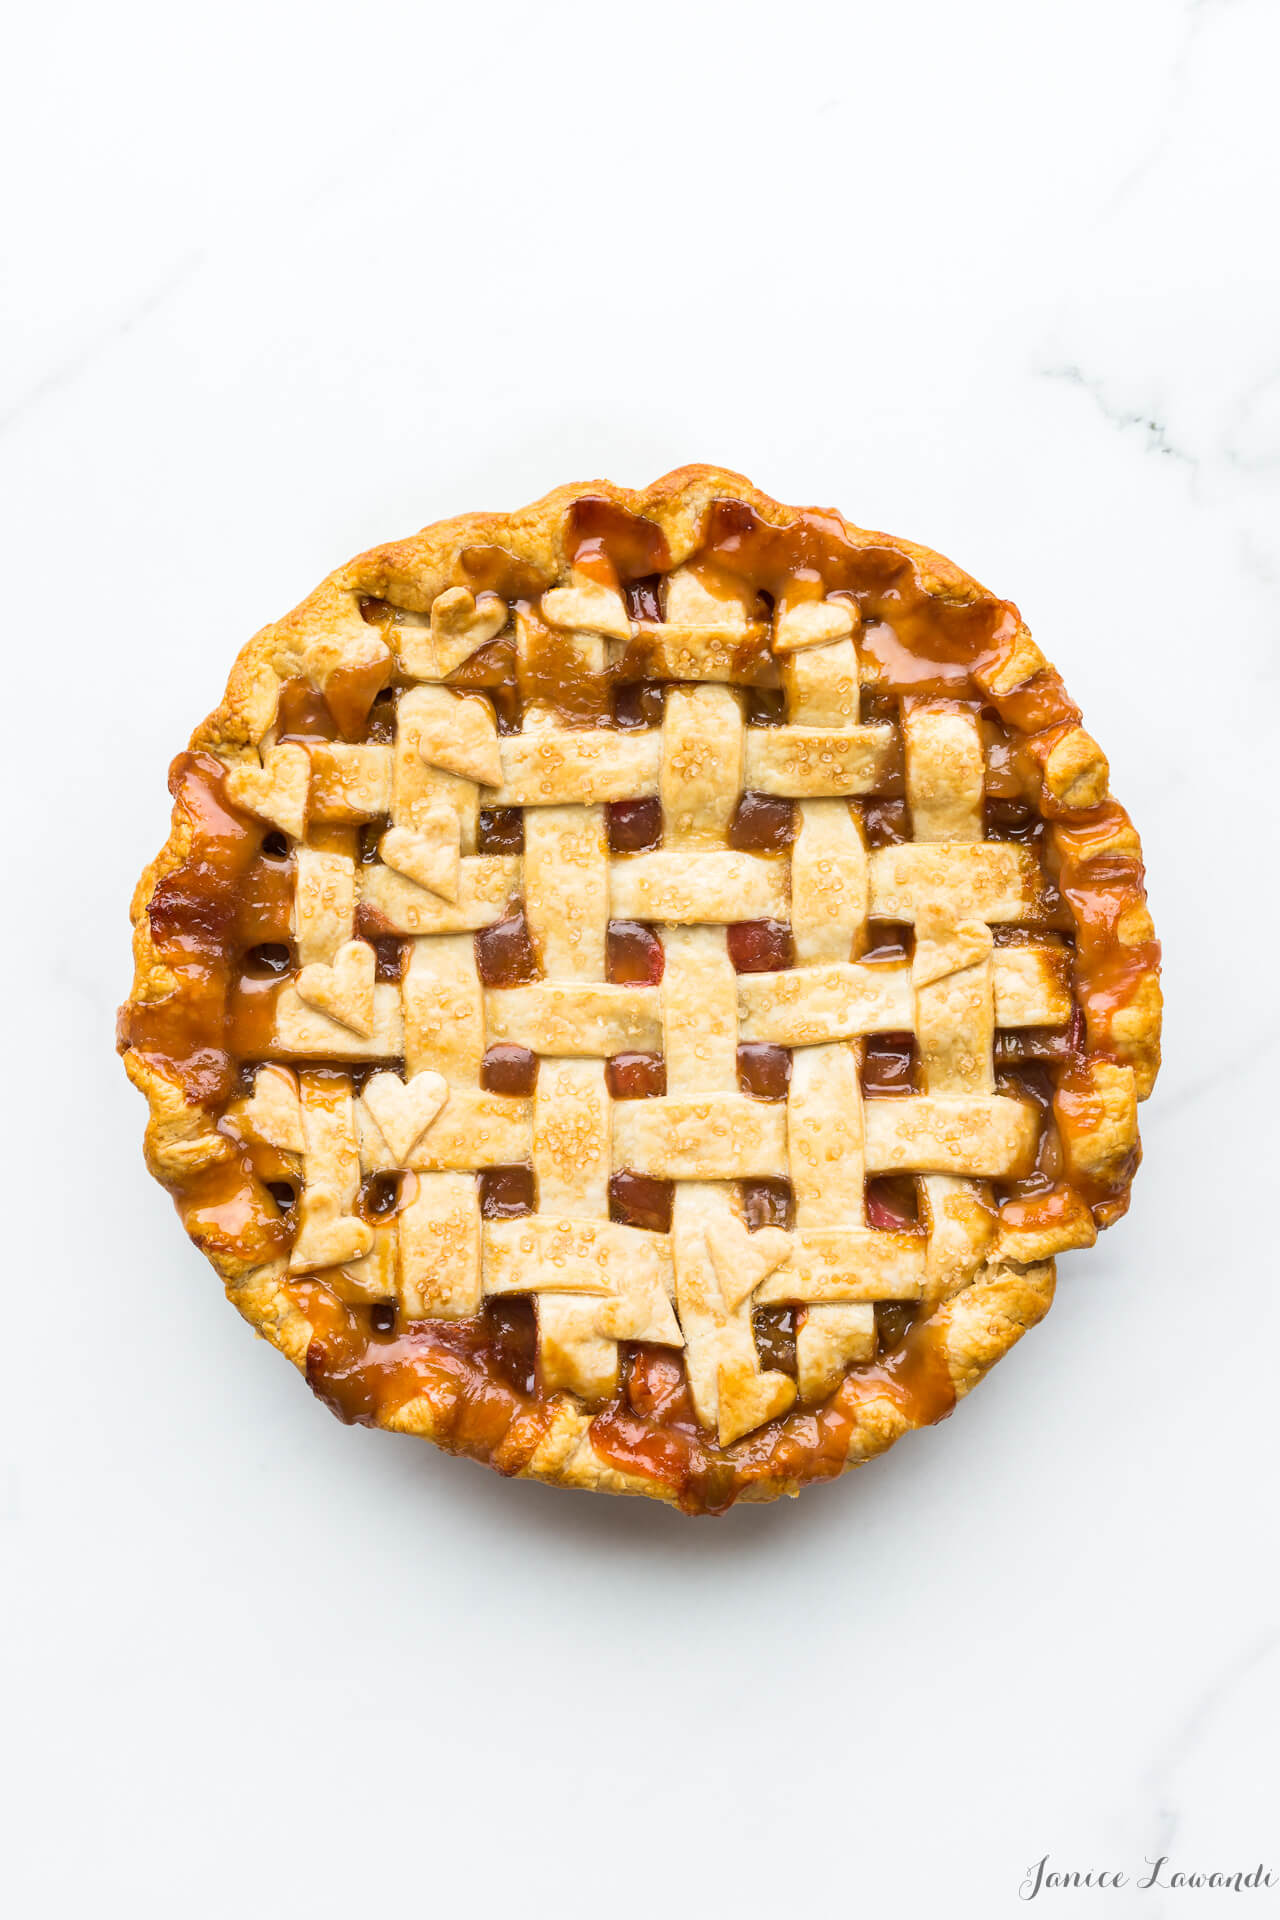 Homemade rhubarb pie with a lattice pie crust and heart cutouts